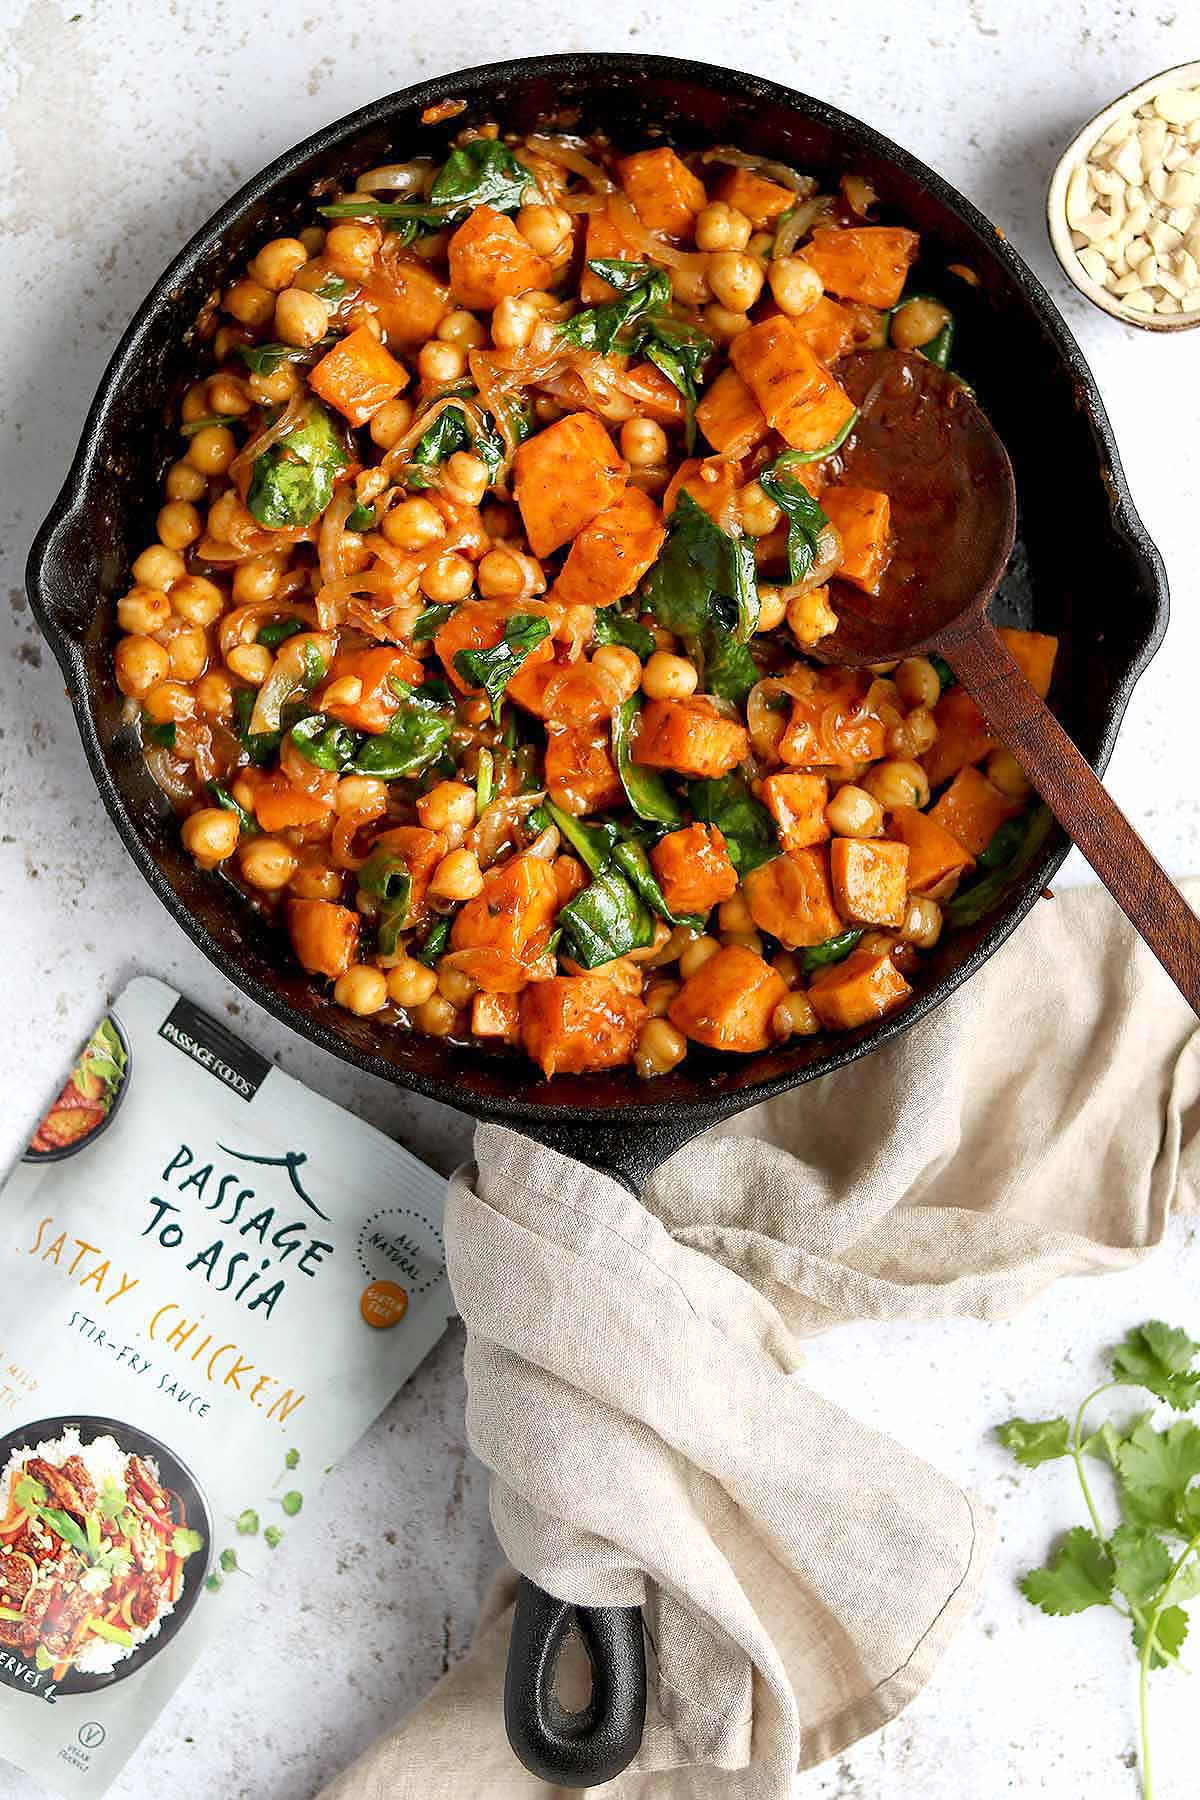 Sweet Potatoes, in a Satay Curry Sauce with Chickpeas and Spinach, served with rice and a Coriander garnish.